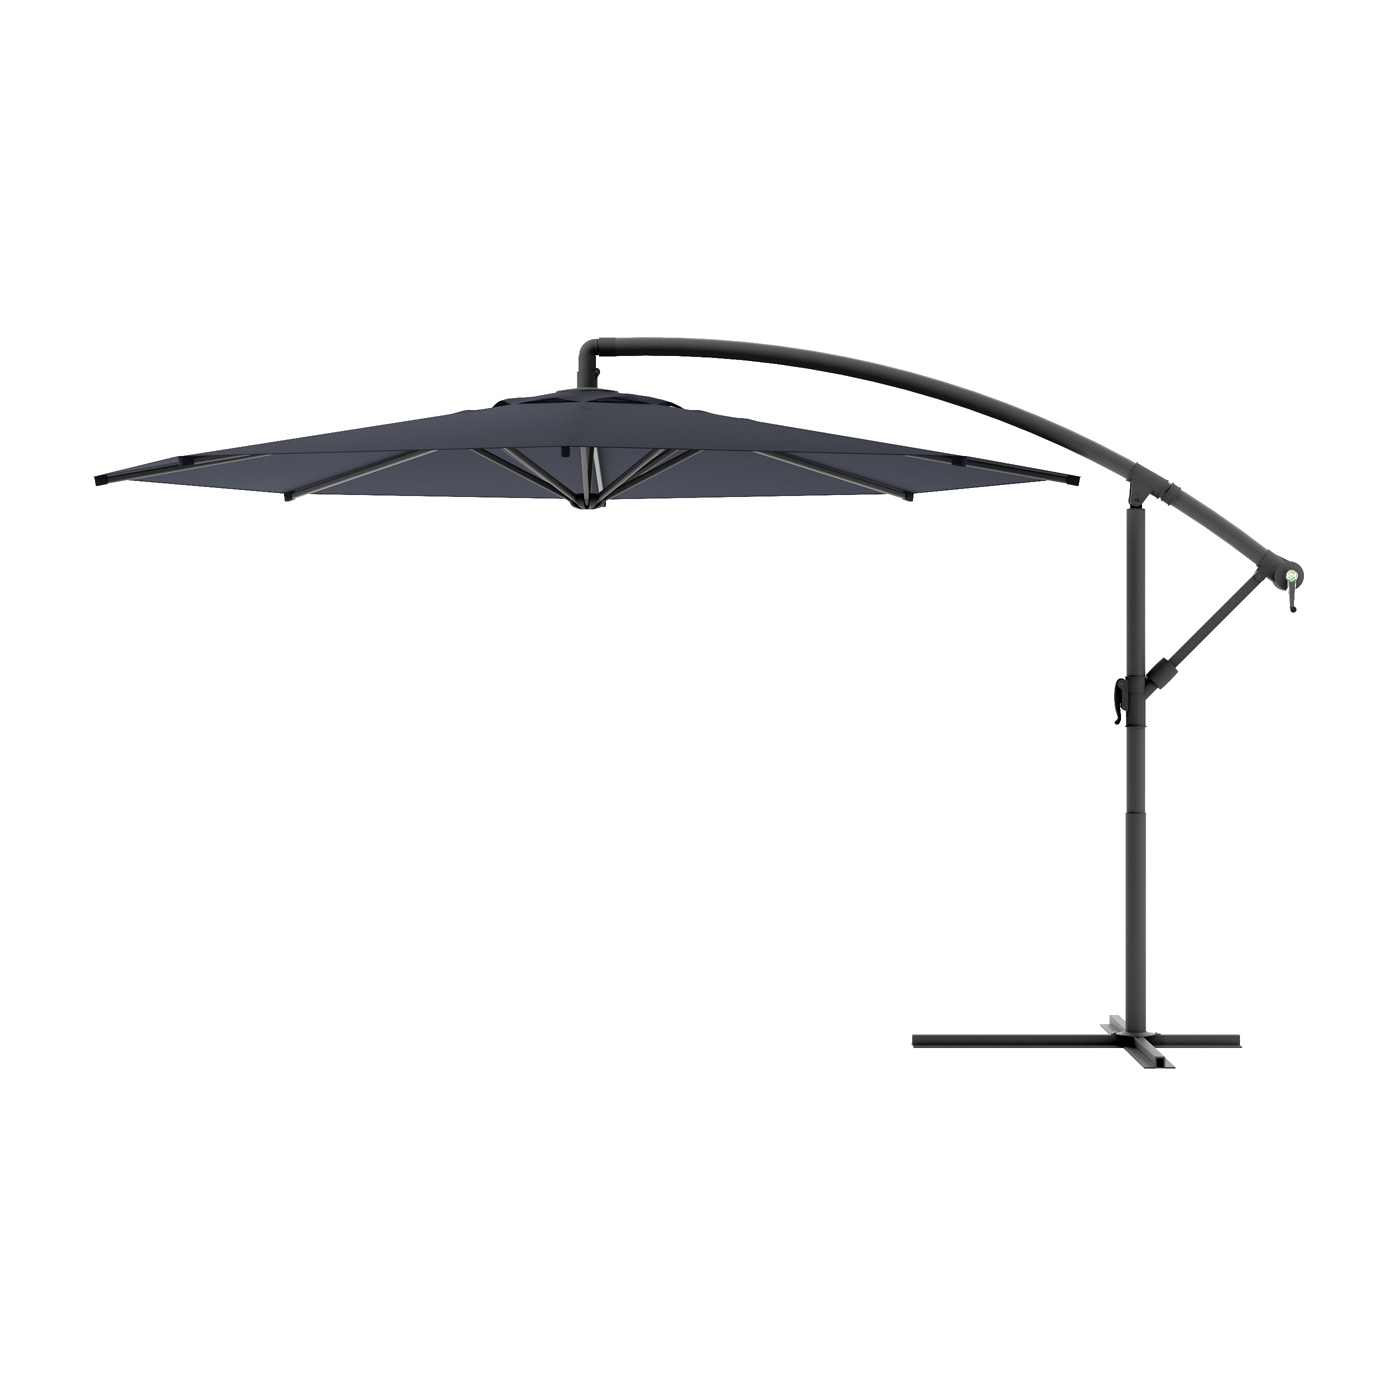 Lowes Cantilever Patio Umbrellas For Fashionable Corliving Ppu 4 Cantilever Patio Umbrella (View 6 of 20)